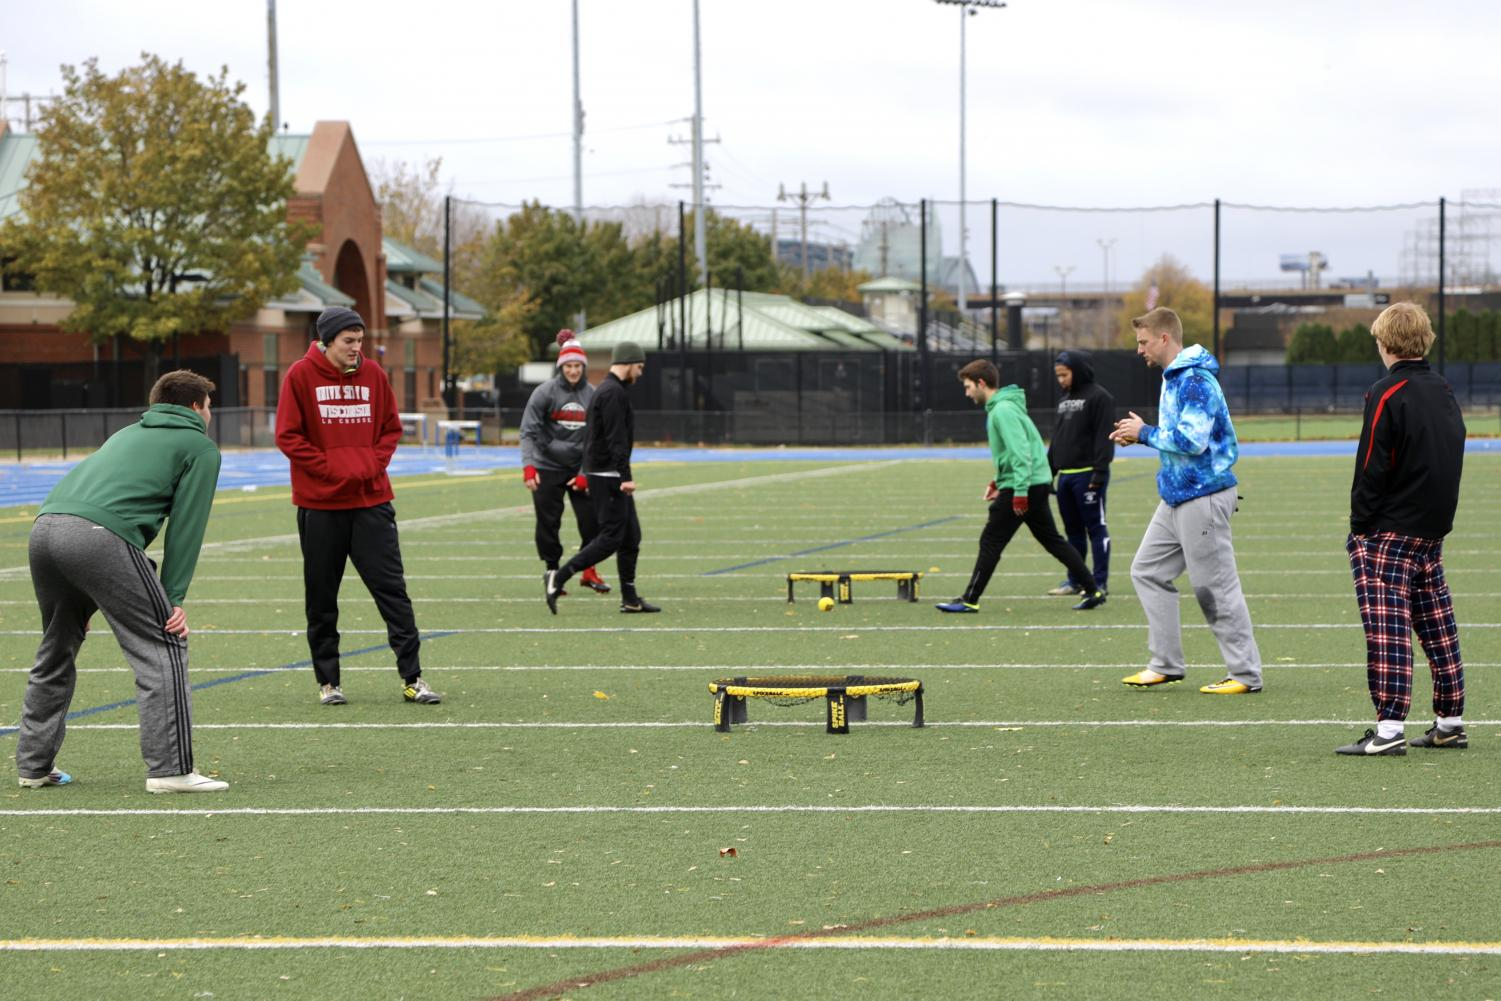 Teams from around Milwaukee compete in Marquette's inaugural spikeball tournament at Valley Fields.